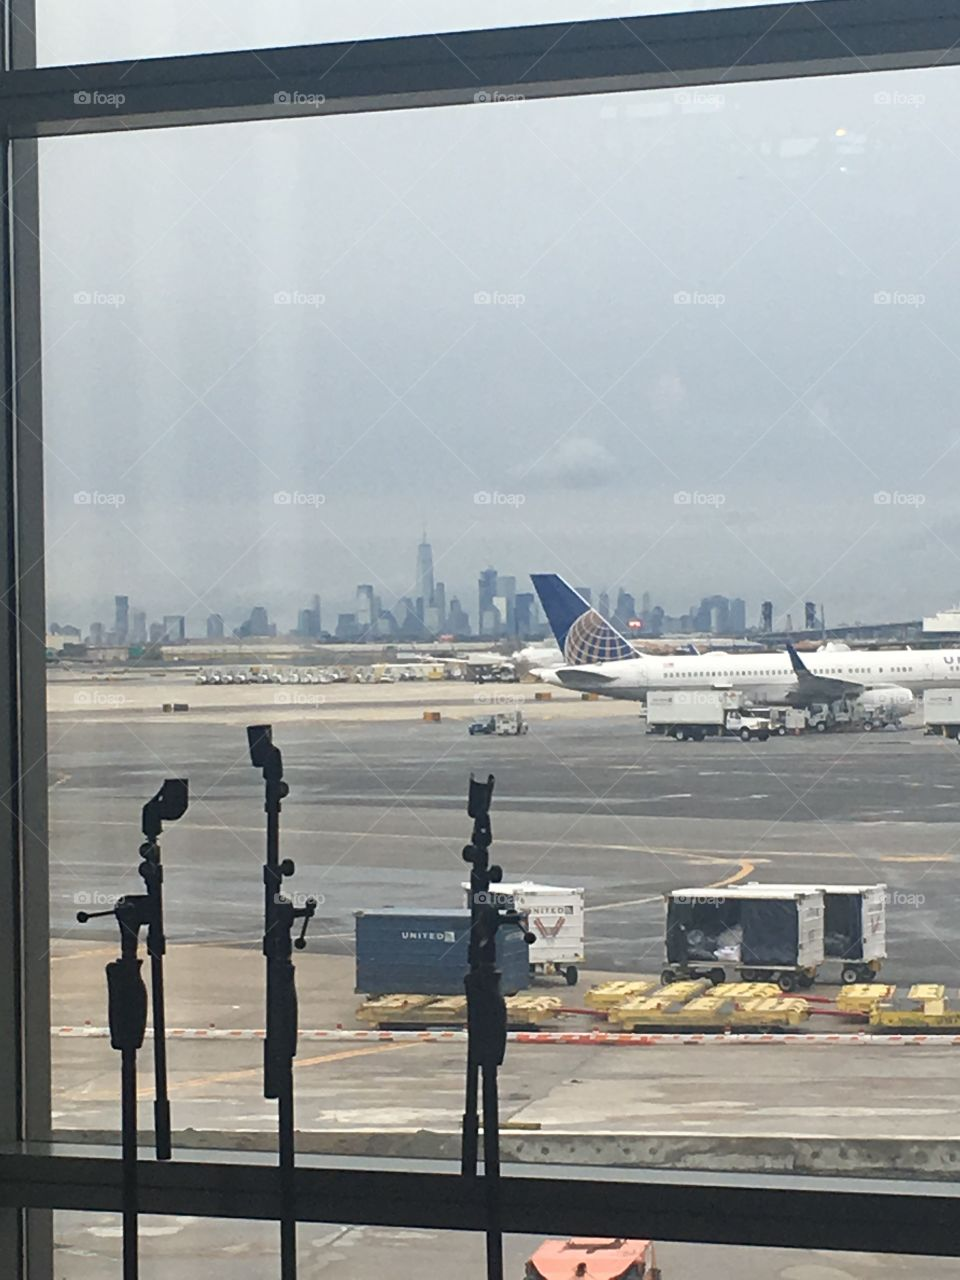 Layover in Newark, NJ with a view of Manhattan in the distance.